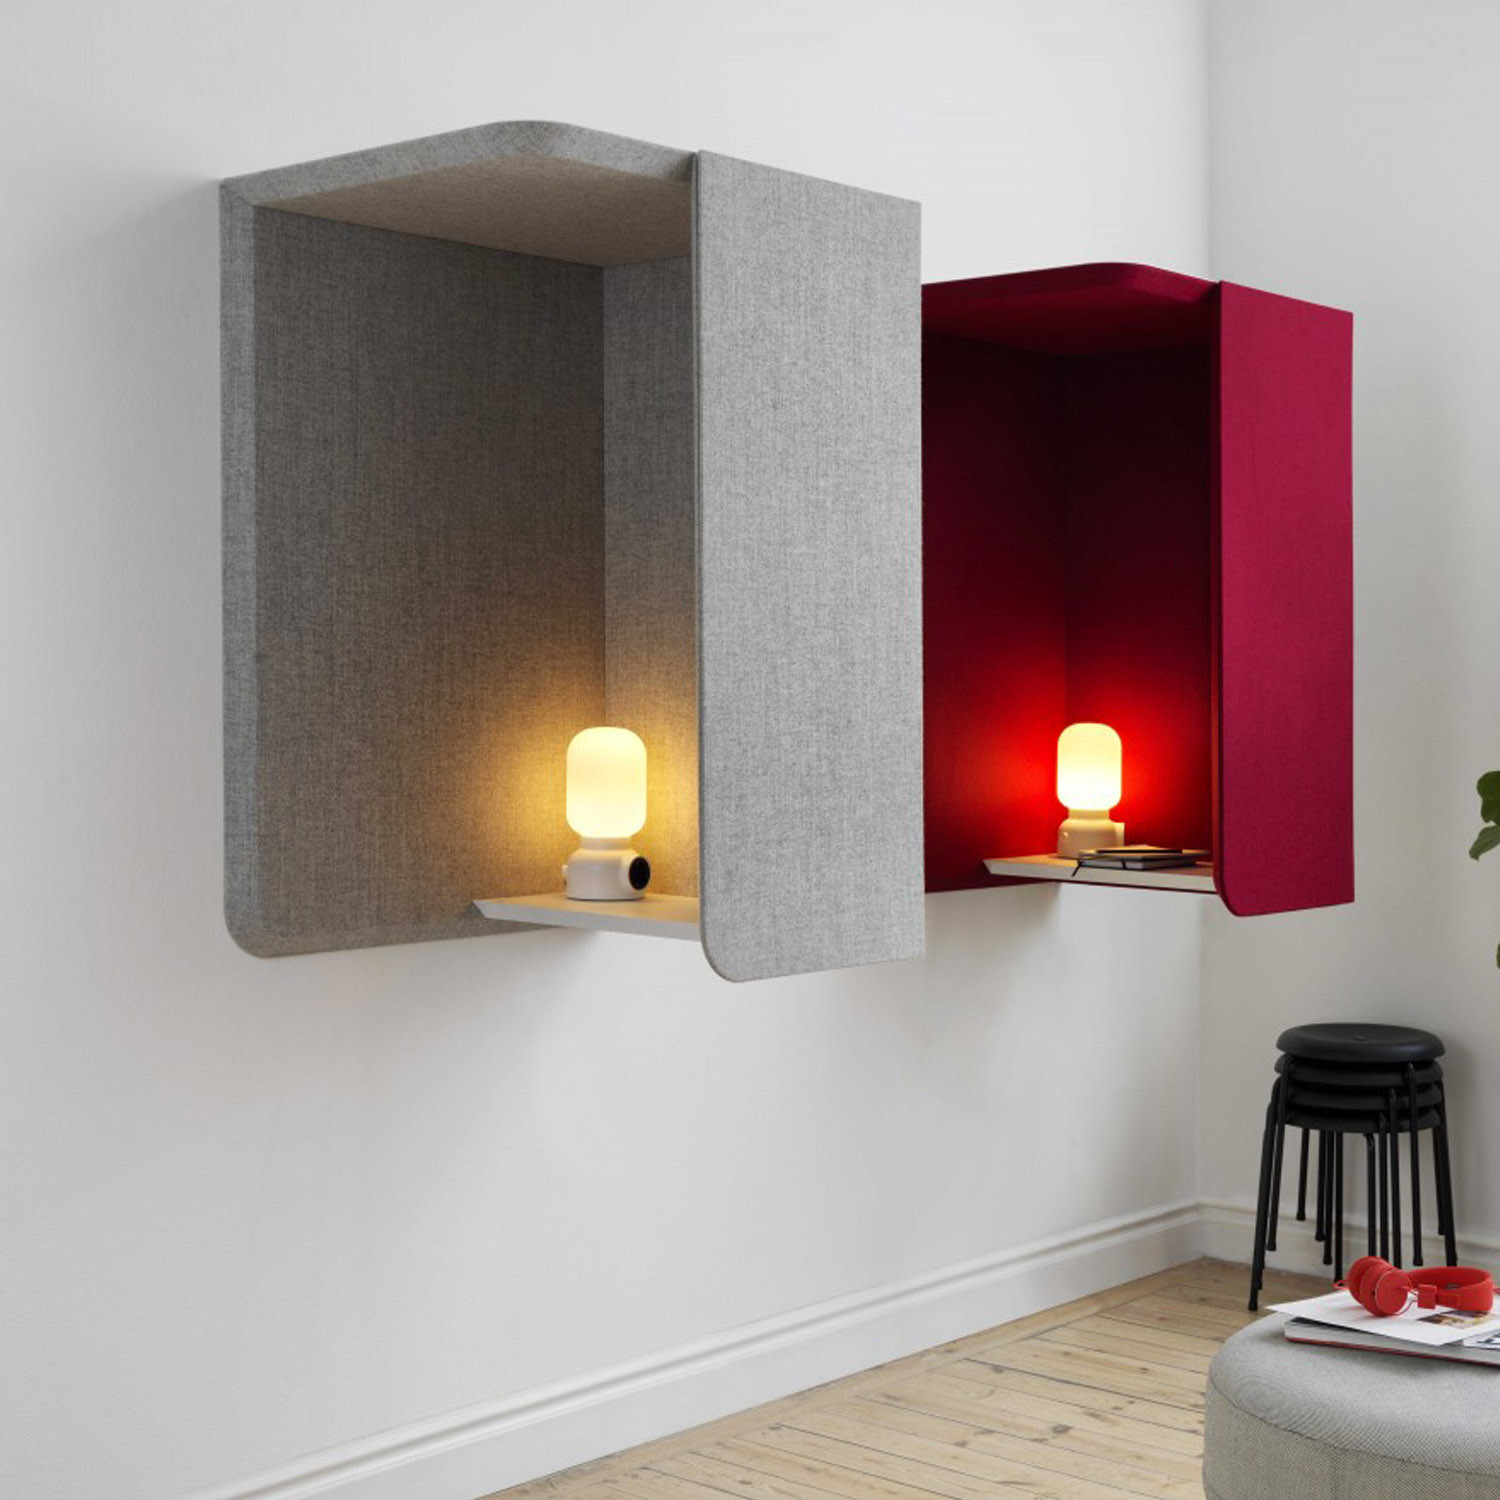 Domo Wall Booths from Abstracta